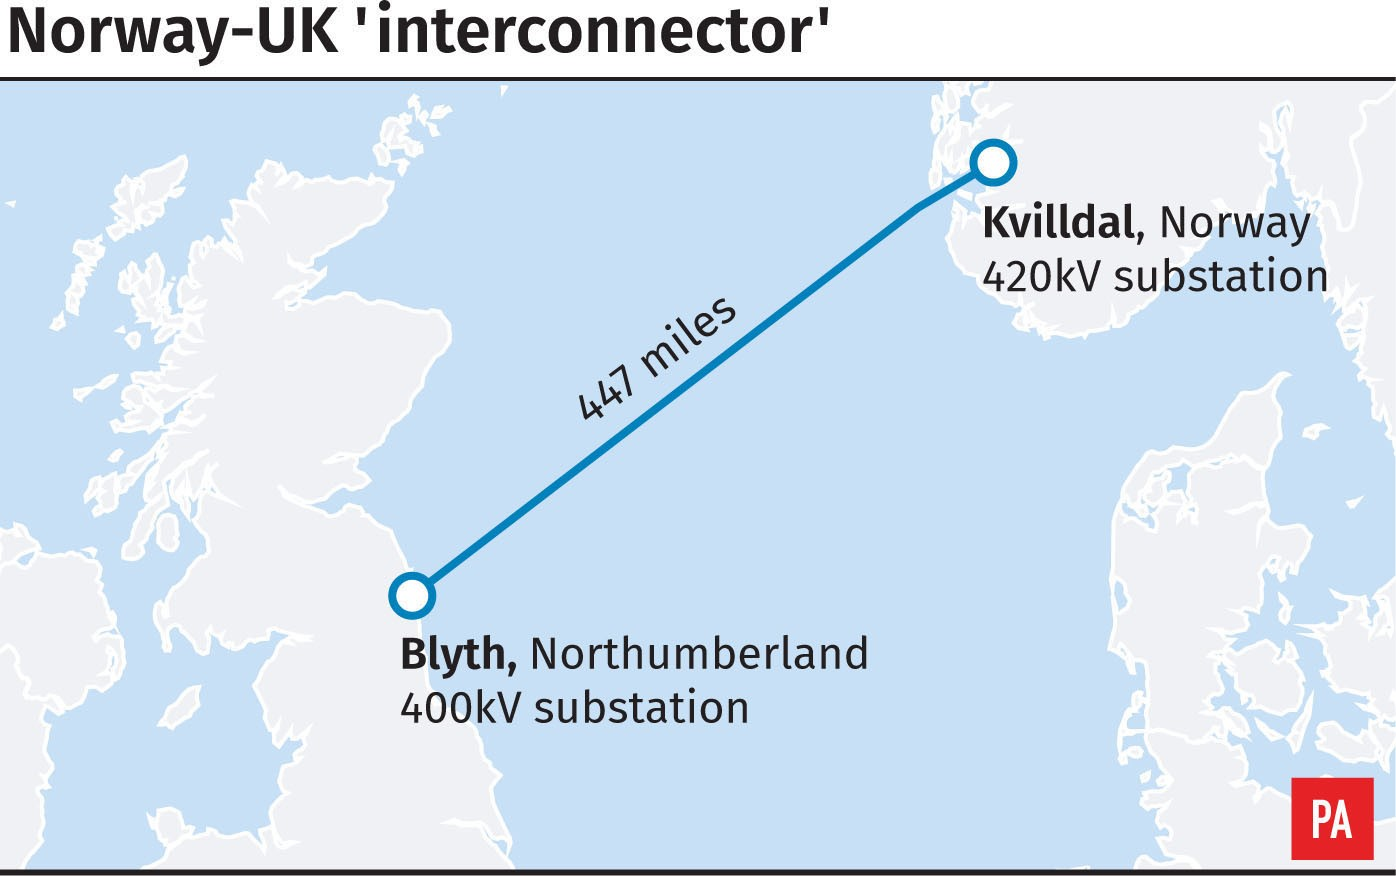 Noway - UK Interconnector